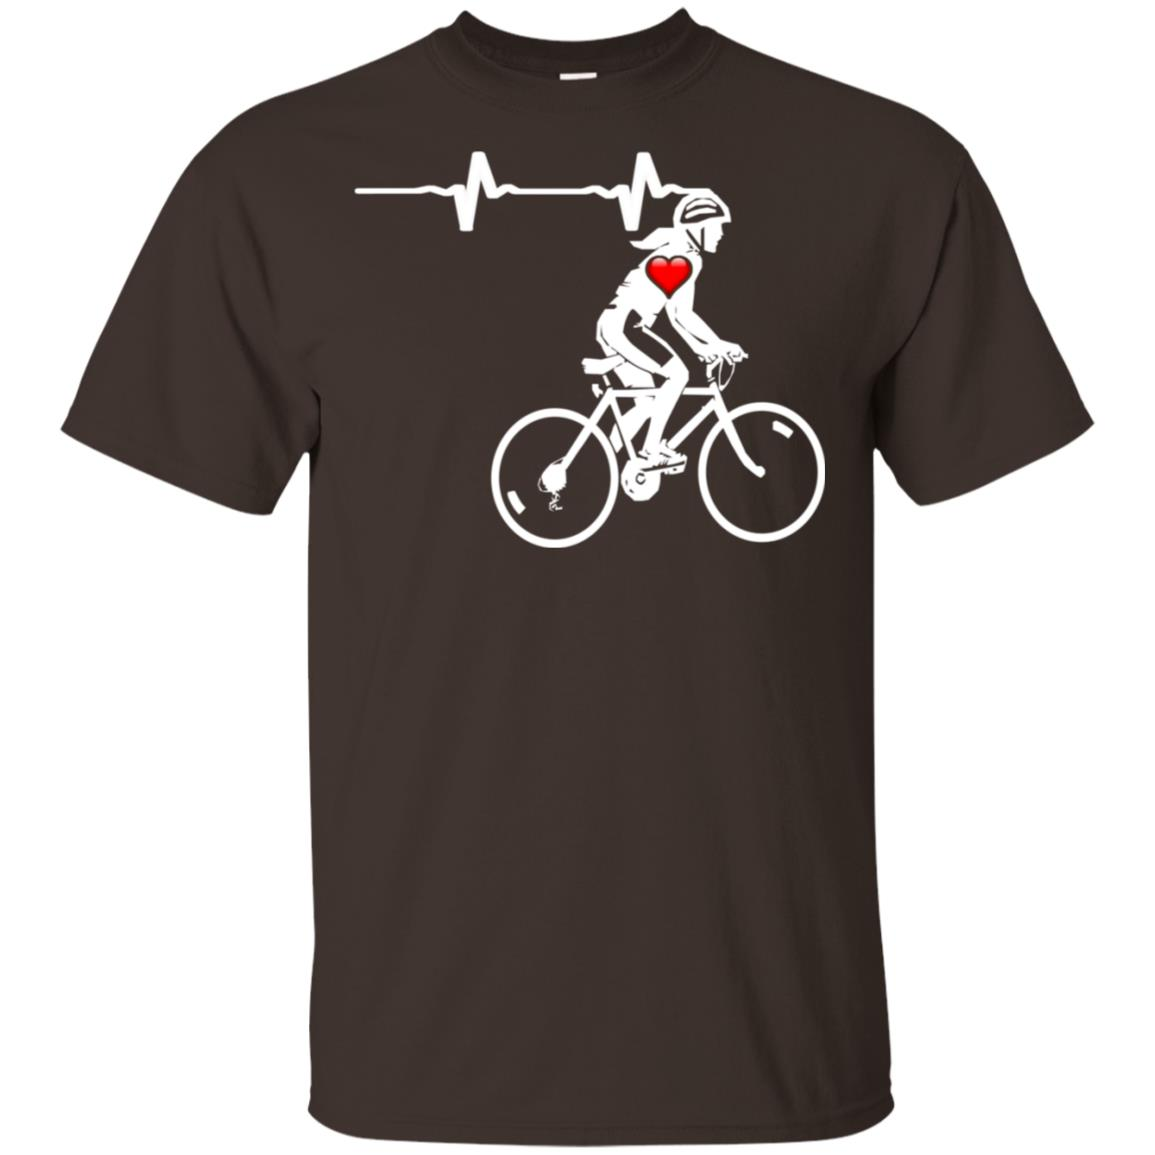 Cycling Gift For Women Heartbeat Biking Tee Lss Unisex Short Sleeve